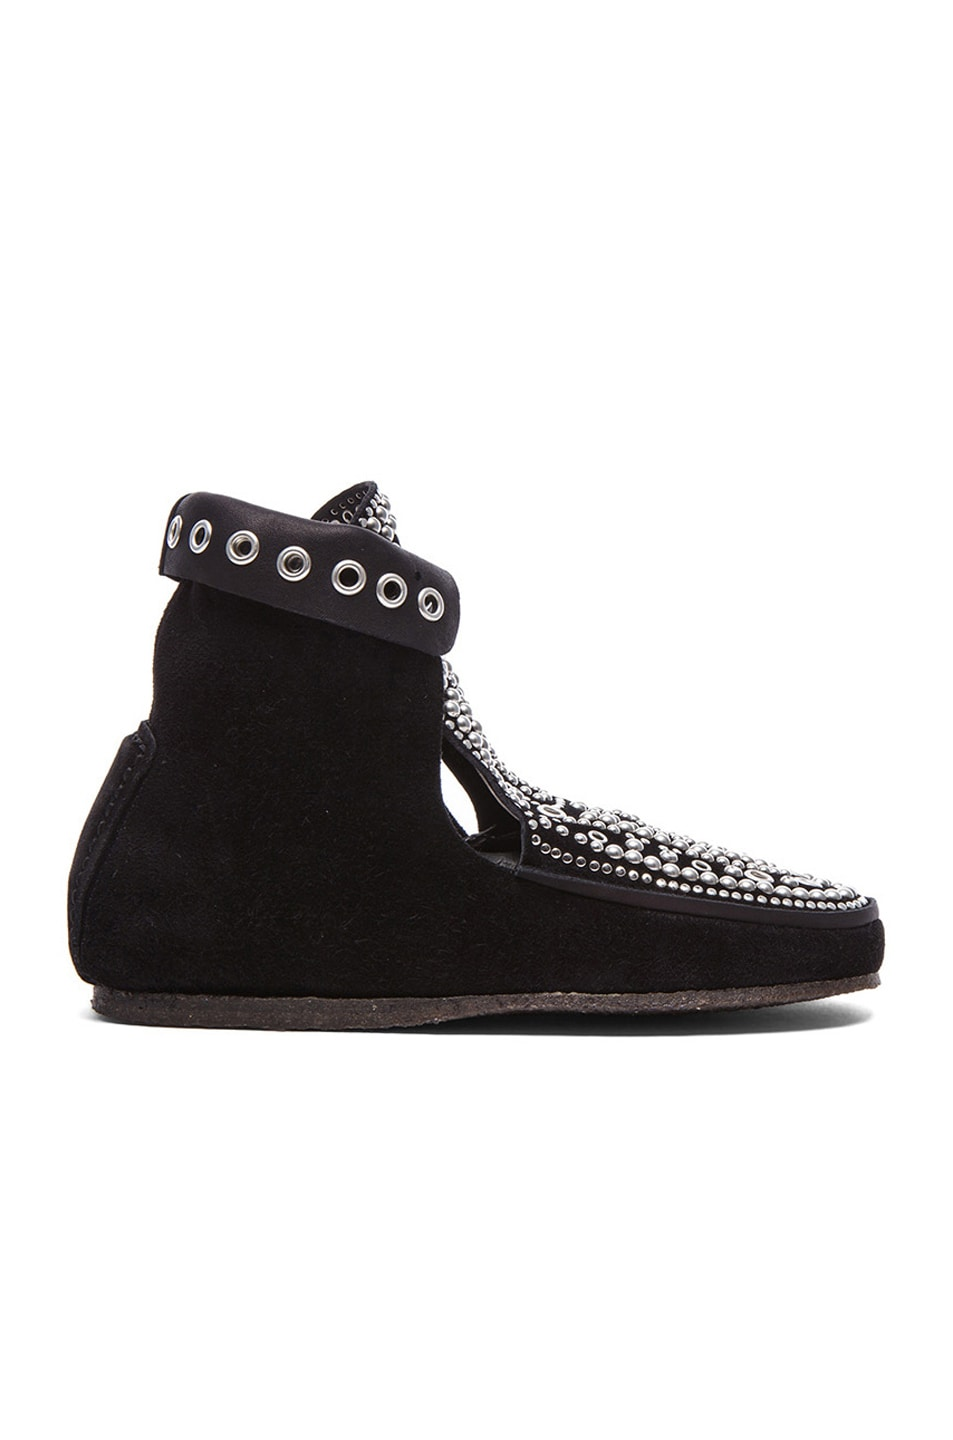 Image 1 of Isabel Marant Morley Rivet Calfskin Velvet Leather Moccassins in Black